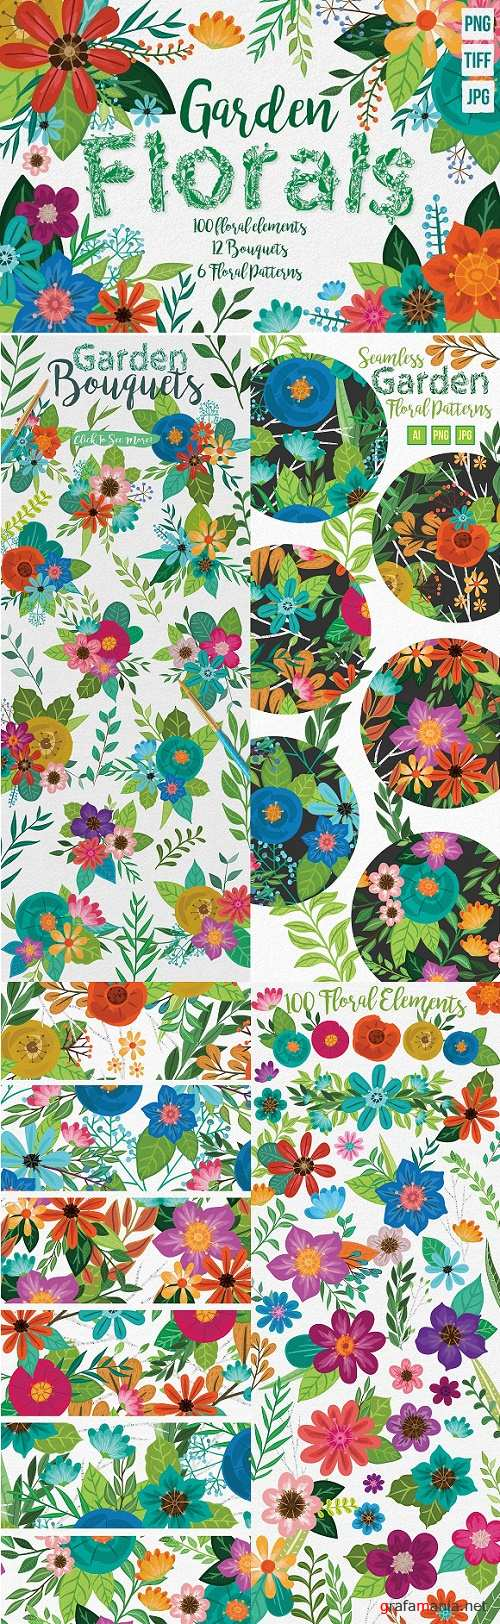 Hand Painted Floral Design Elements 1569511